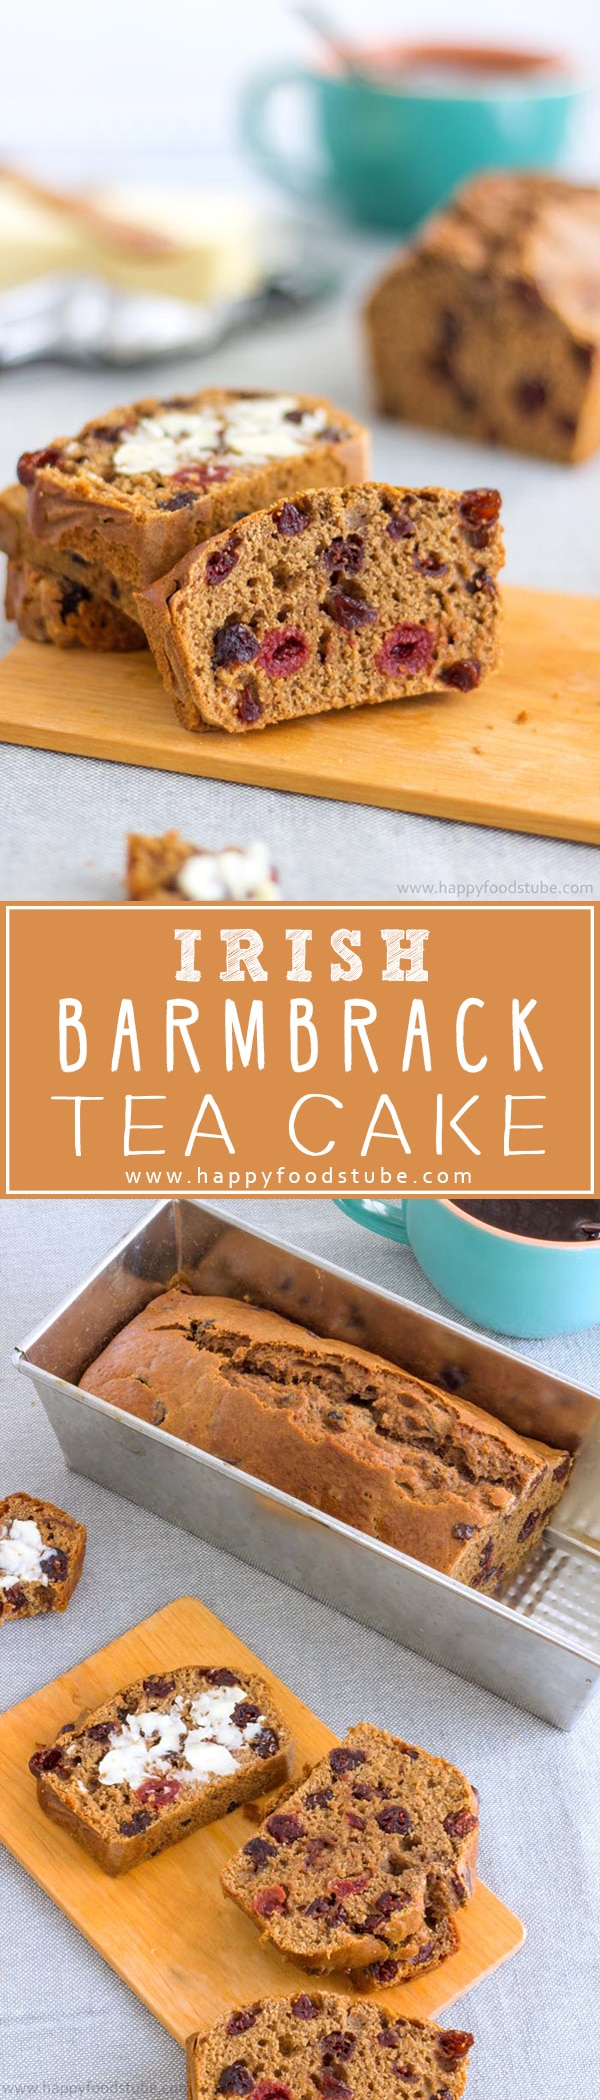 This traditional Irish Barmbrack Tea Cake is a perfect afternoon treat. Dried fruit and spices make it extra delicious, also it is yeast-free recipe. #barmbrack #irish #bread #halloween #teacake #fruitcake #sweetbread #traditional #recipe #baking #authentic